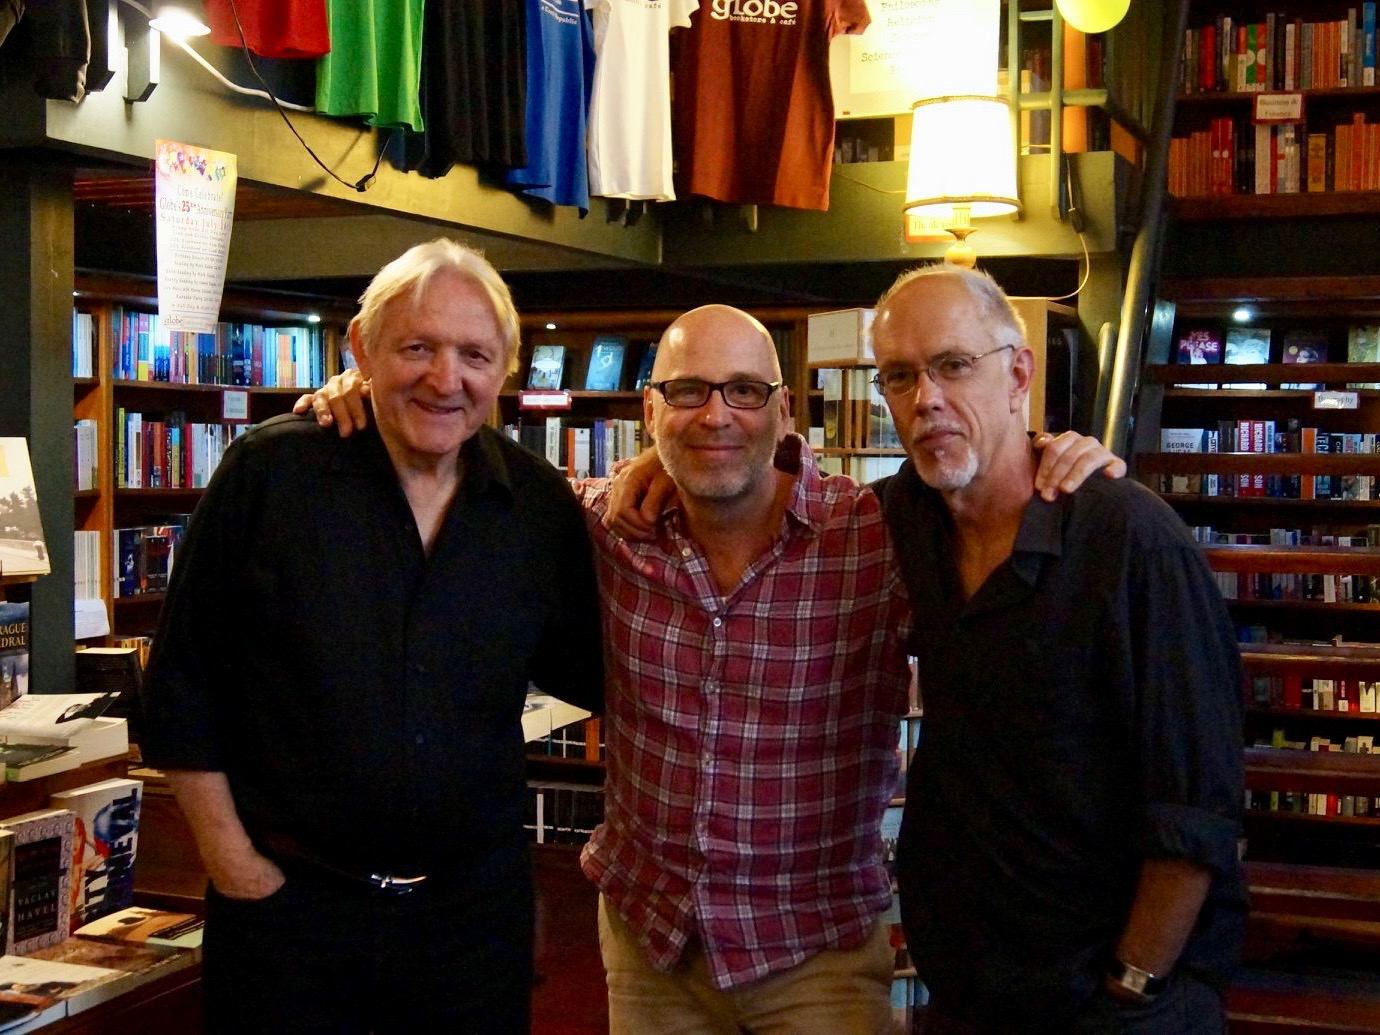 The 25th anniversary party, with James Ragan, Mark Baker, and Mark Slouka, in The Globe Bookstore and Coffeehouse, in Prague, Czech Republic.